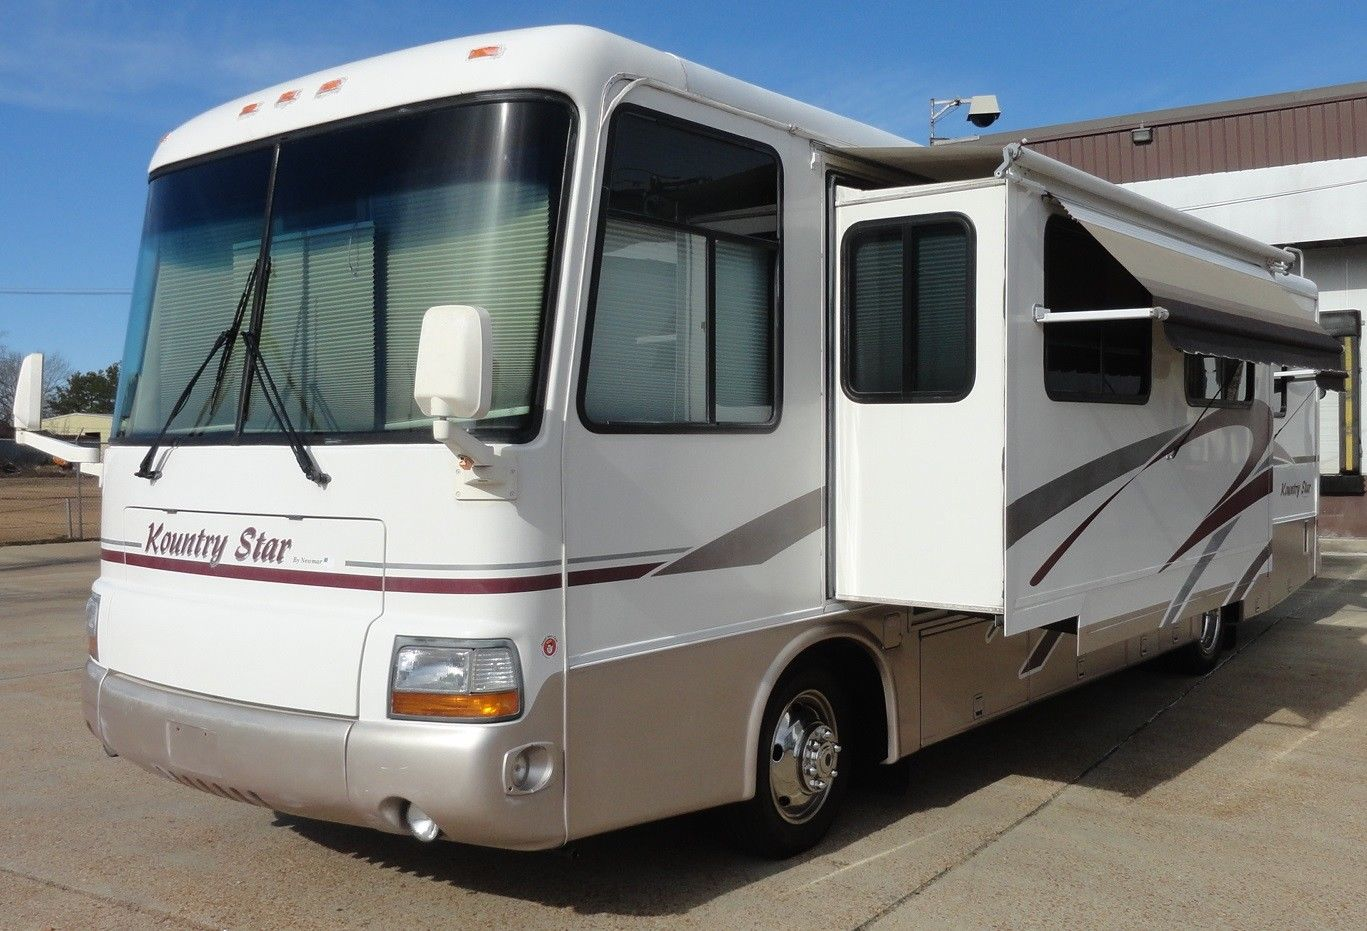 5 awnings 2000 Newmar Kountry Star camper